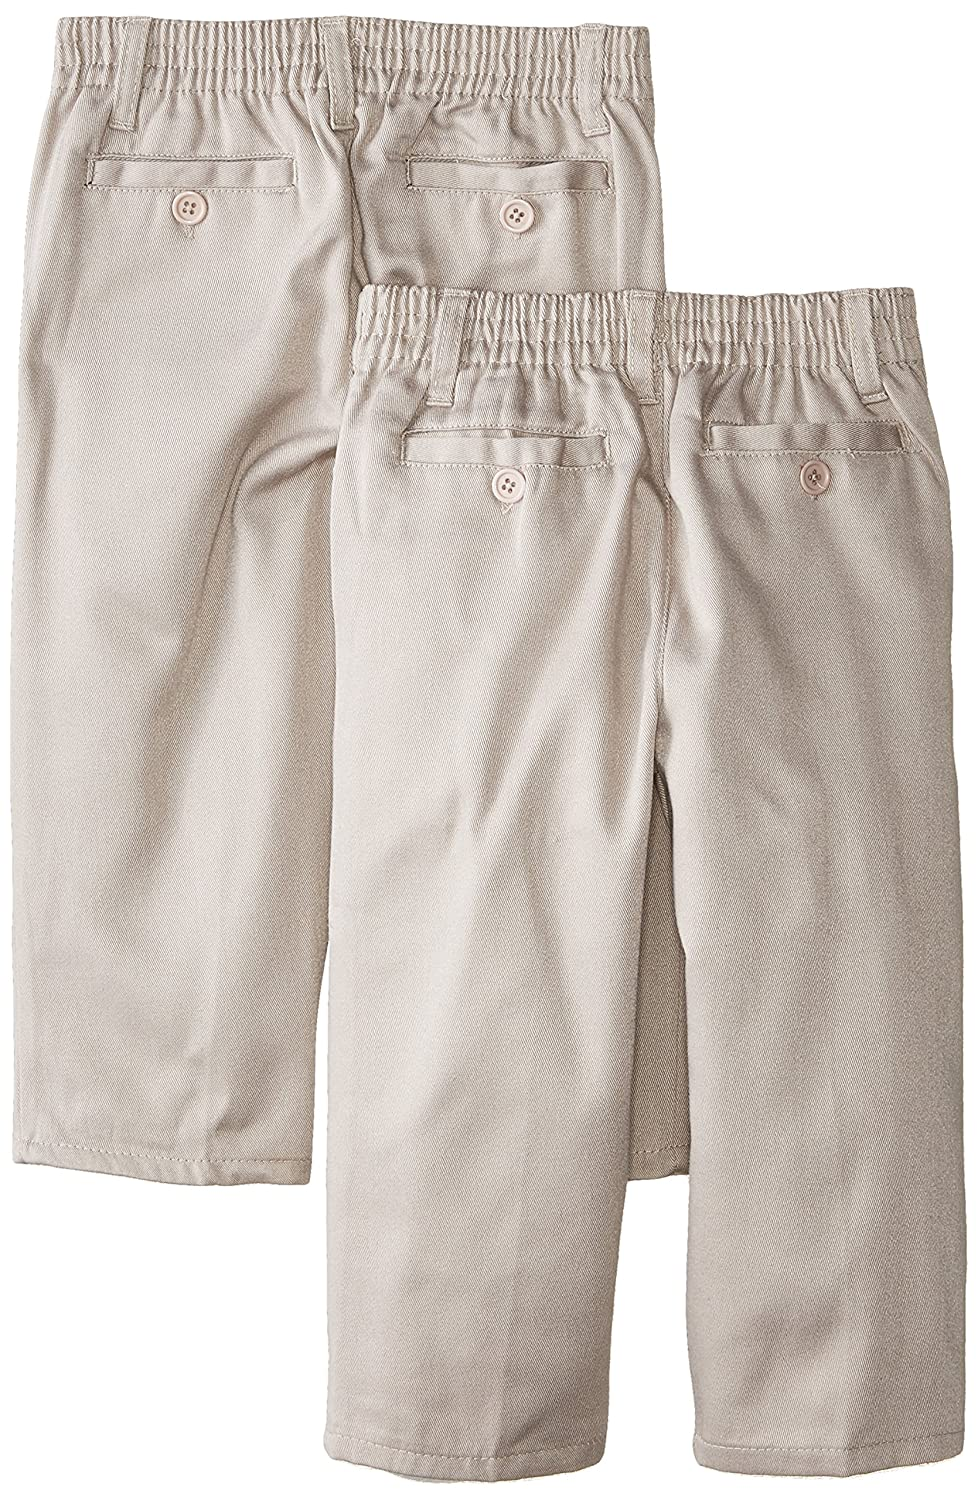 More Styles Available Genuine Boys 2 Pack Pants